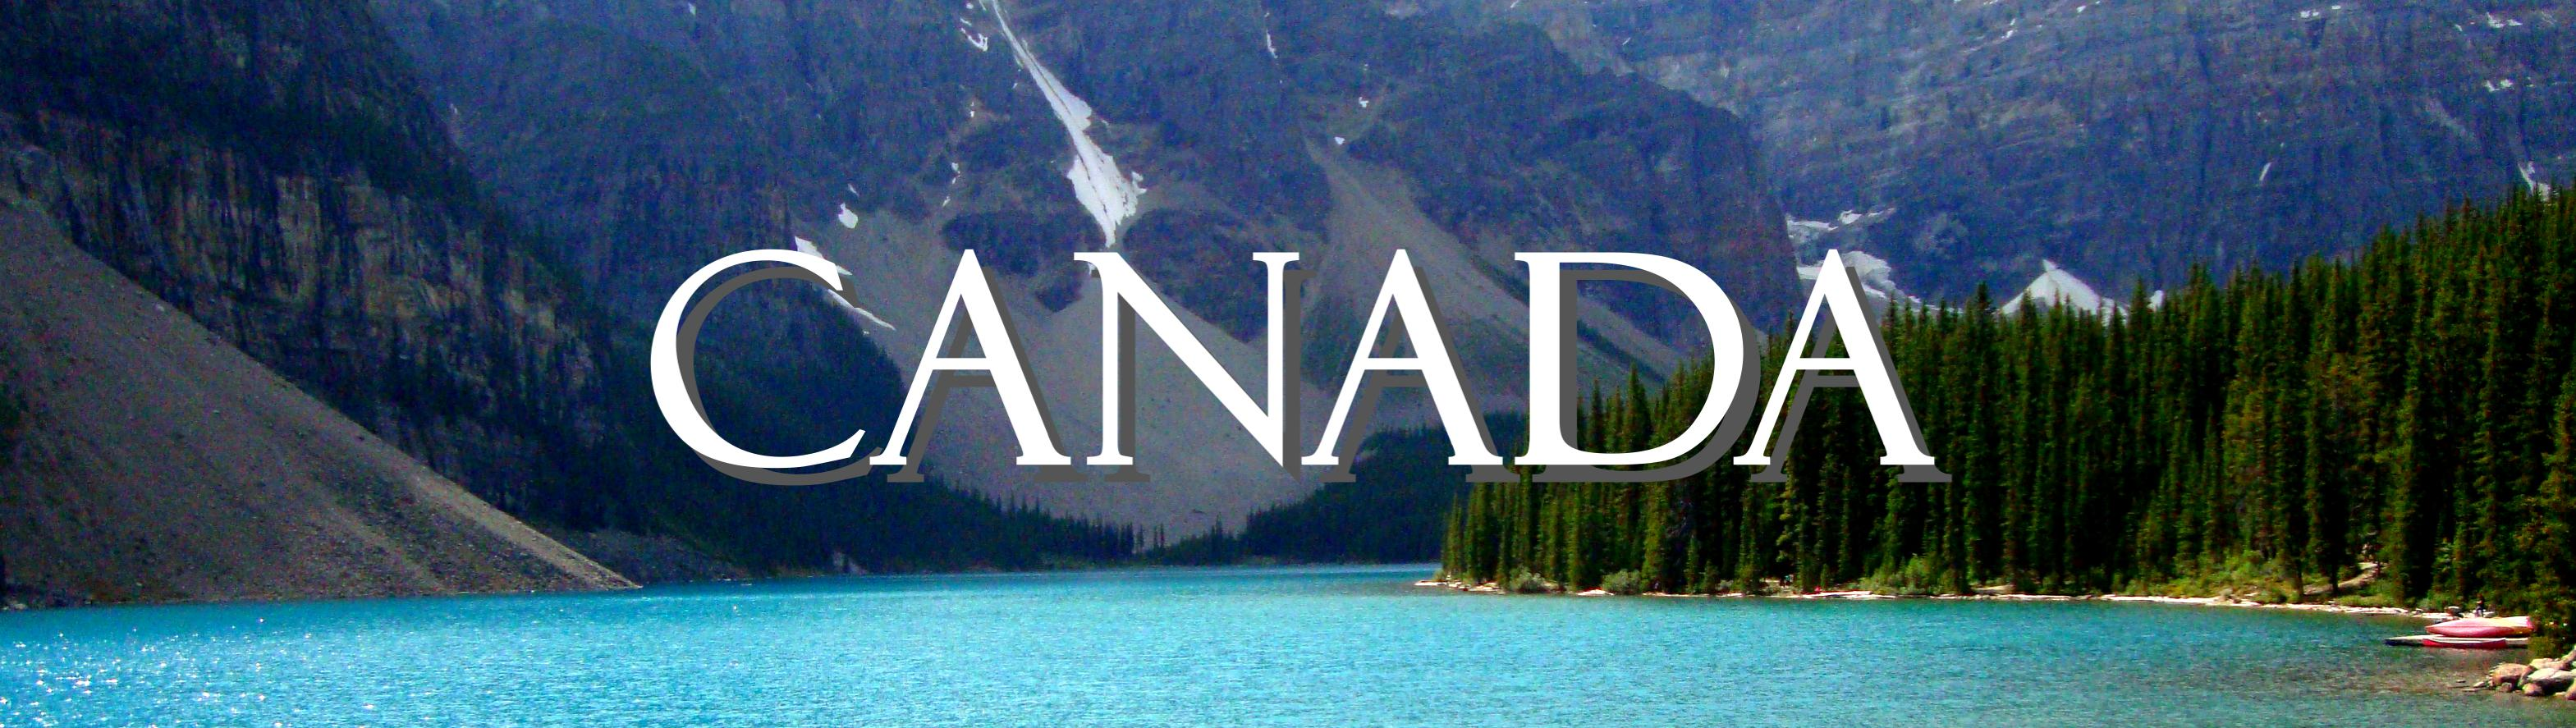 canada-banner1